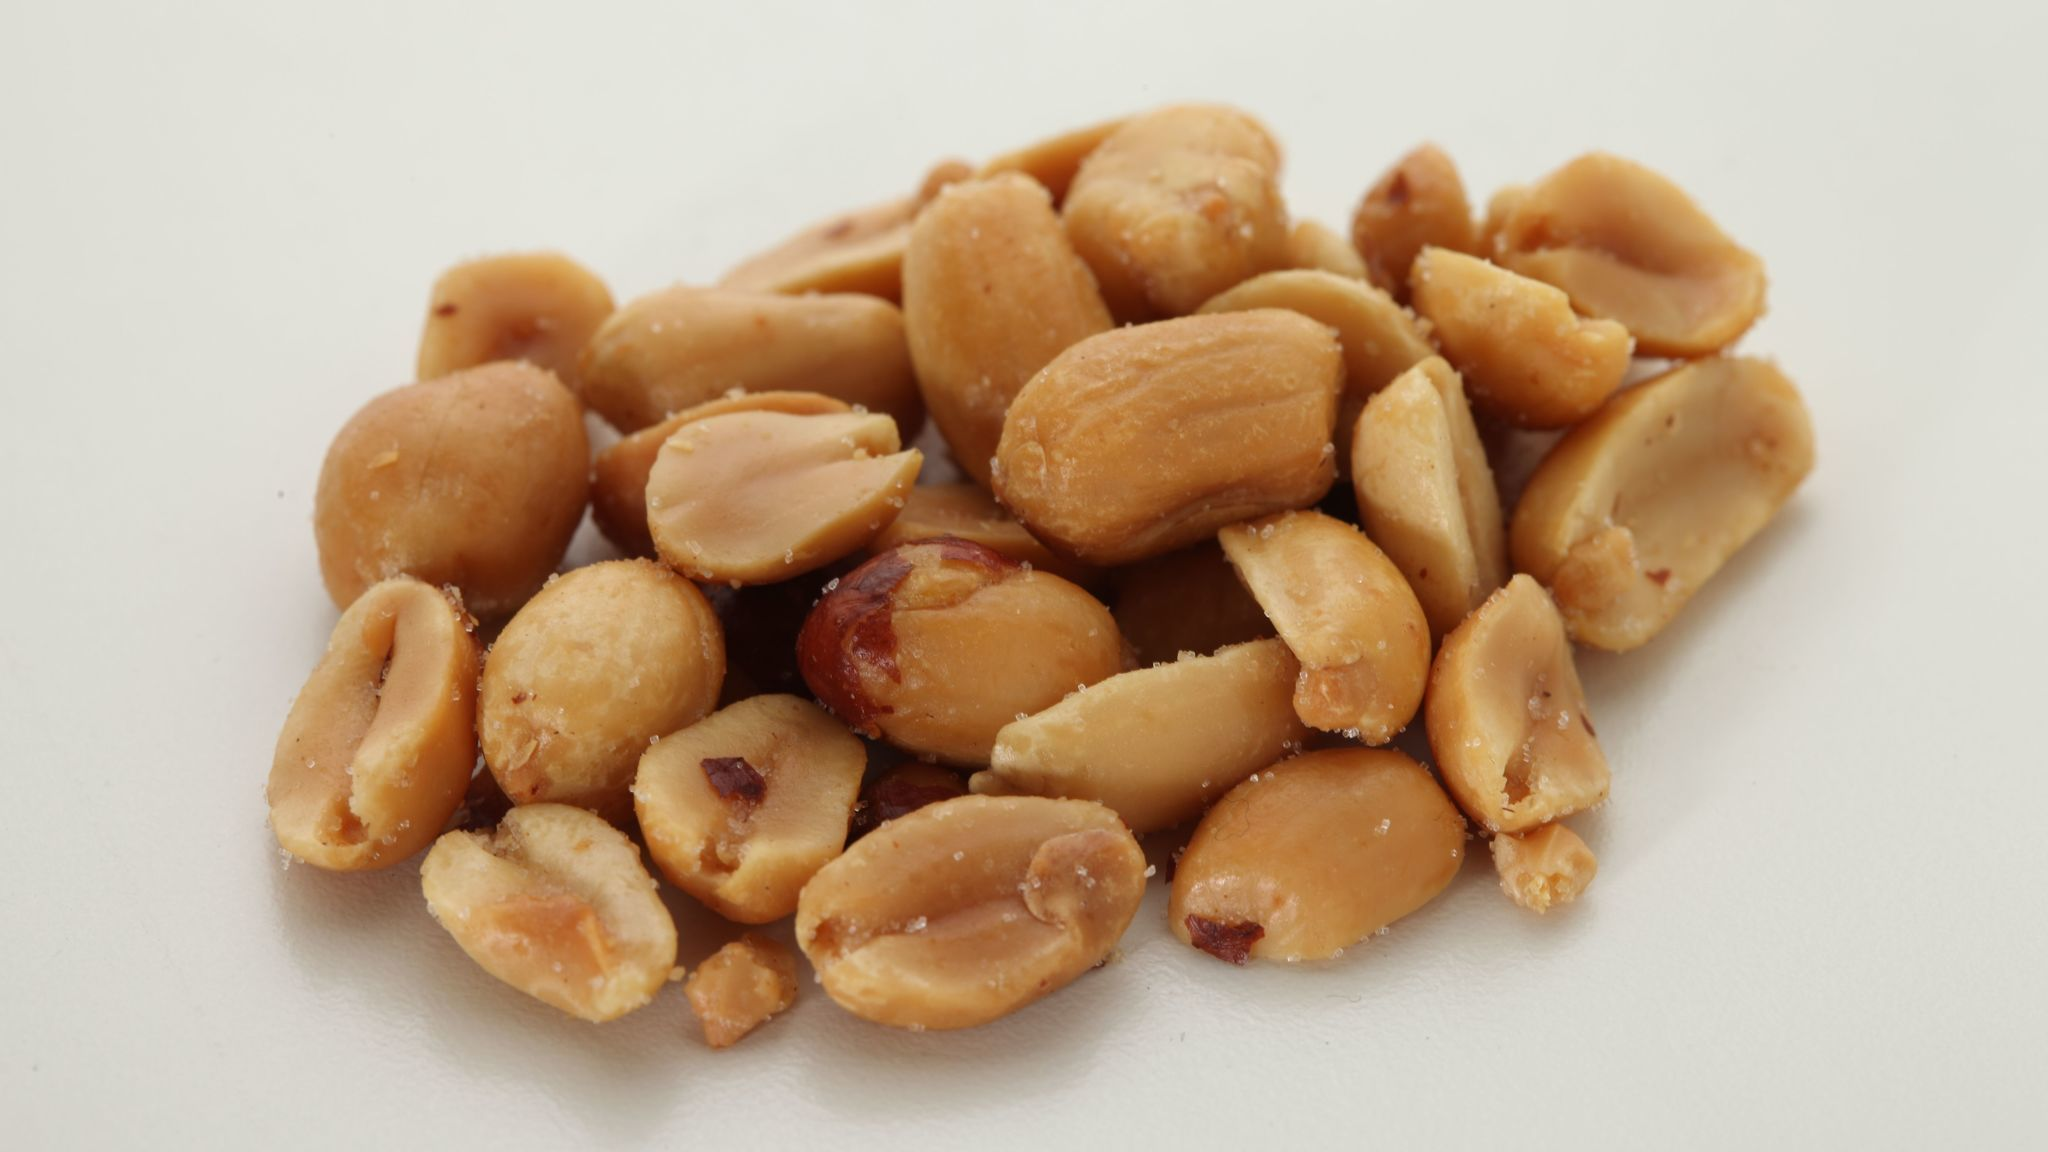 How Pediatricians Are Responding To New Peanut Allergy Guidelines